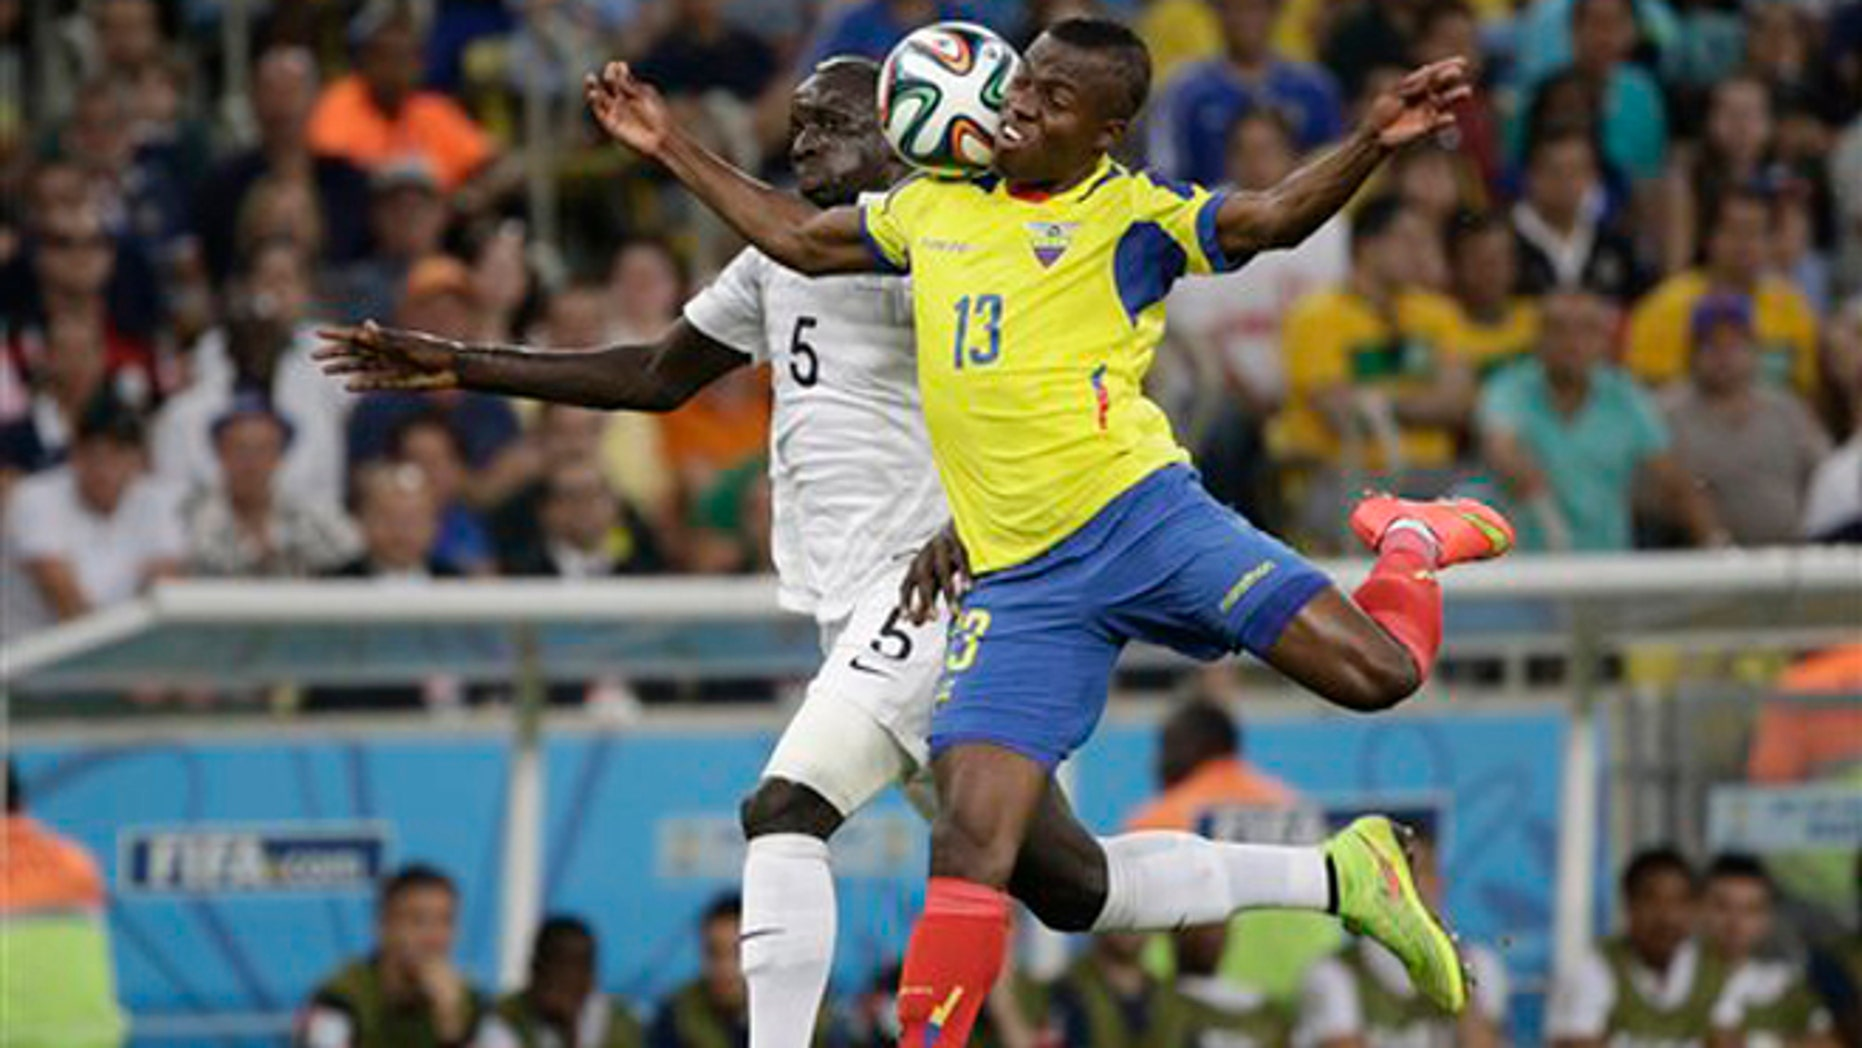 France's Mamadou Sakho, left, and Ecuador's Enner Valencia challenge for the ball during the group E World Cup soccer match between Ecuador and France at the Maracana Stadium in Rio de Janeiro, Brazil, Wednesday, June 25, 2014. (AP Photo/Christophe Ena)